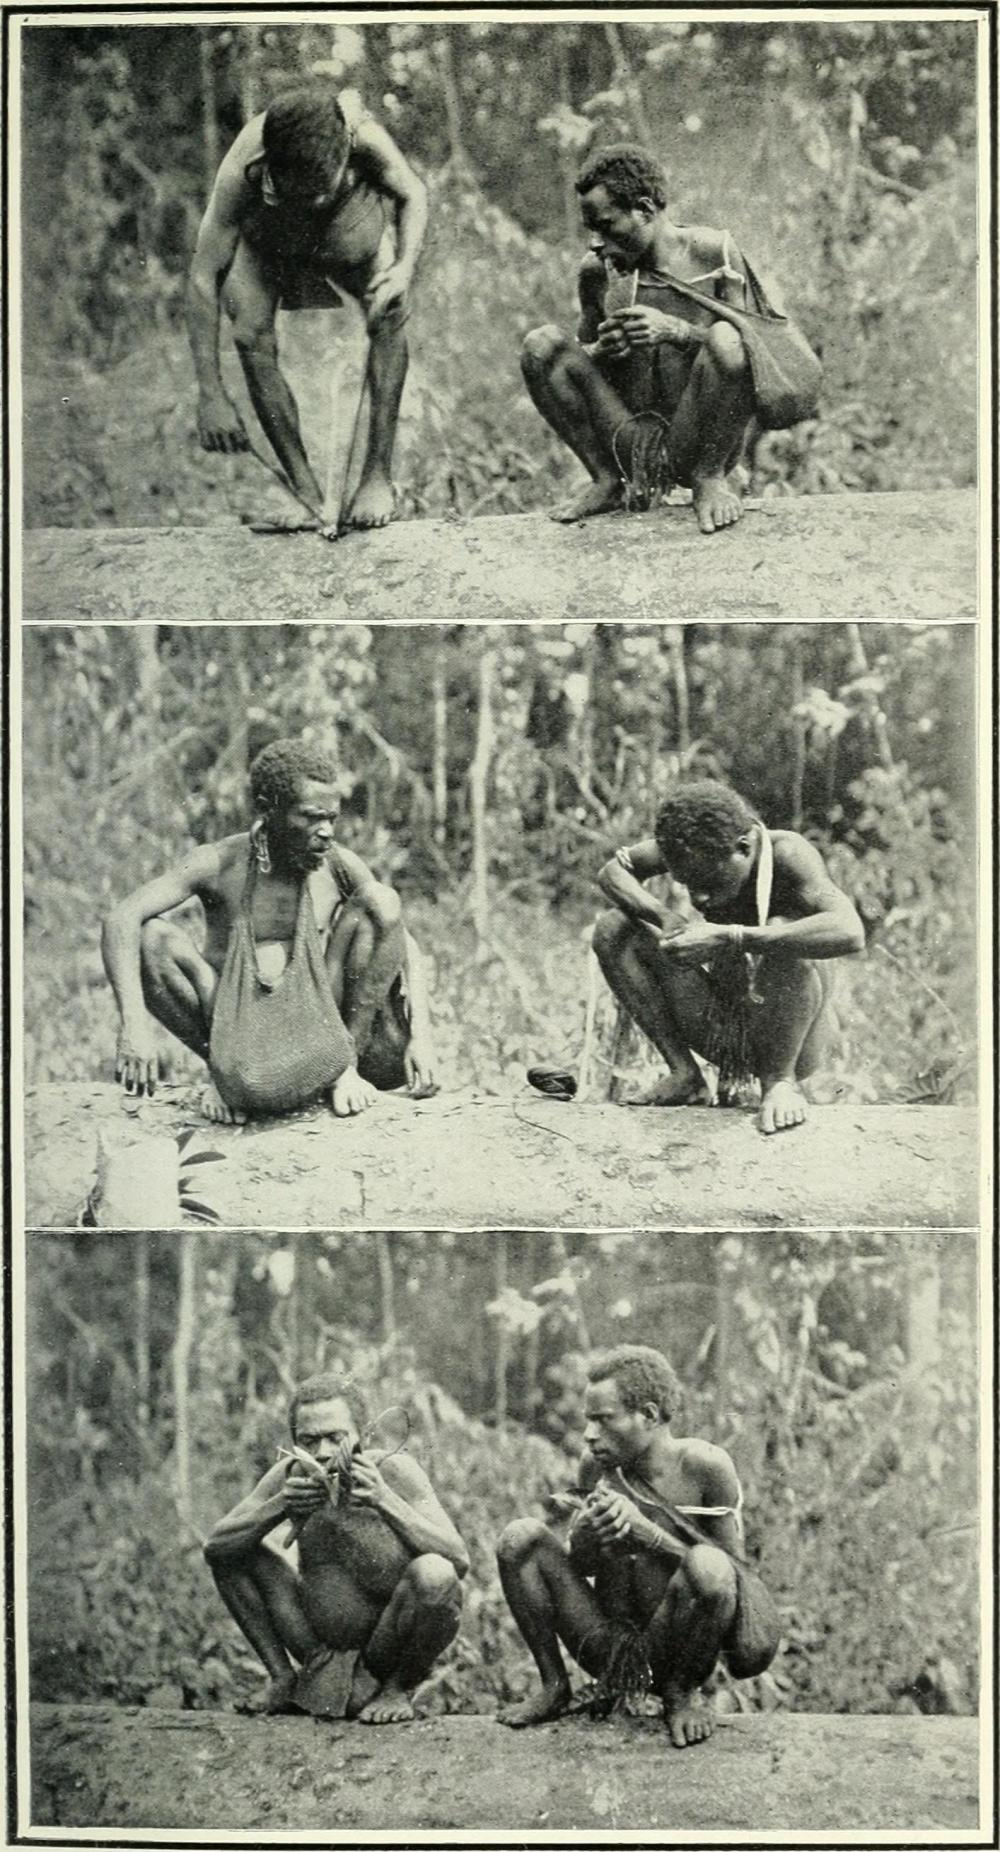 The_land_of_the_New_Guinea_pygmies;_an_account_of_the_story_of_a_pioneer_journey_of_exploration_into_the_heart_of_New_Guinea_(1913)_(14579339729)